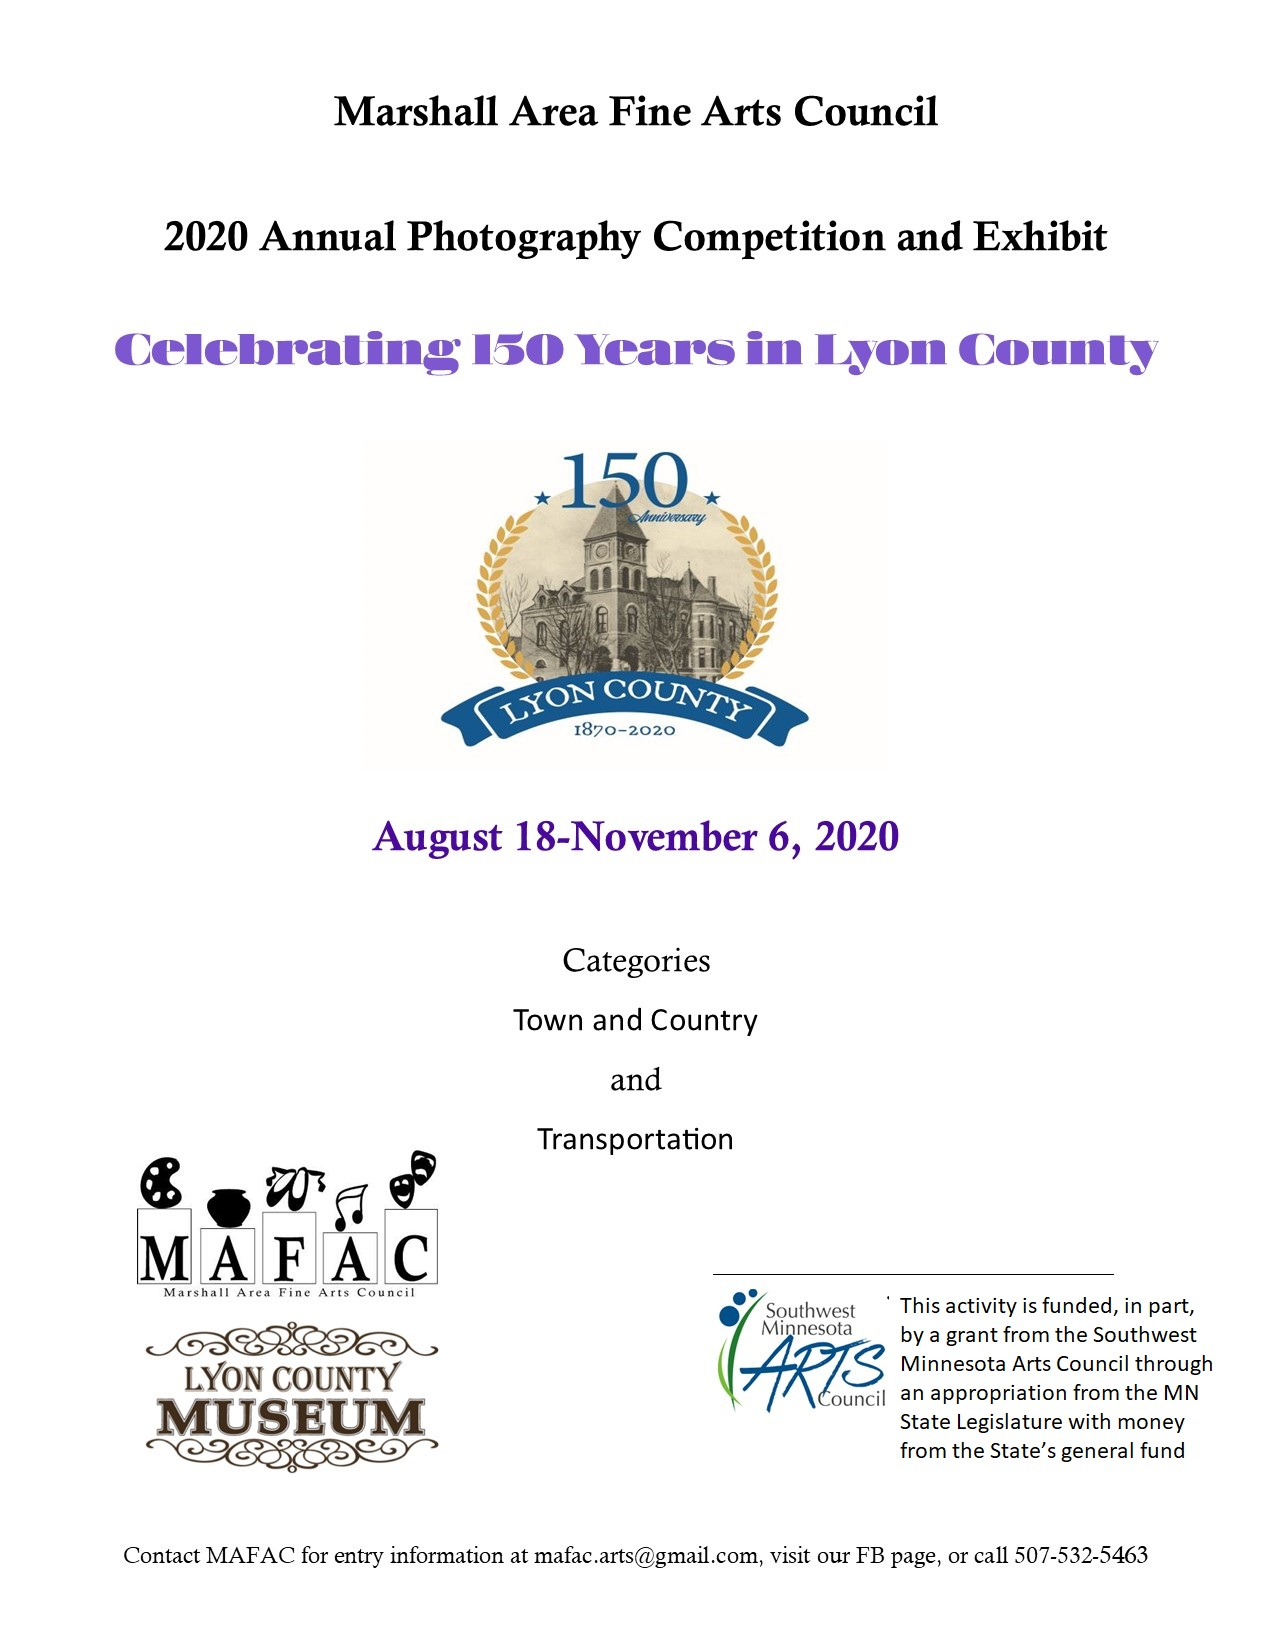 Marshall Area Fine Arts Council 2020 Annual Photography Competition and Exhibit. Celebrating 150 Years in Lyon County. August 18-November 6, 2020. Categories: Town & Country and Transportation. MAFAC in partnership with the Lyon County Museum. Contact MAFAC for entry information at mafac.arts@gmail.com, visit our FB Page, or call 507-532-5463.